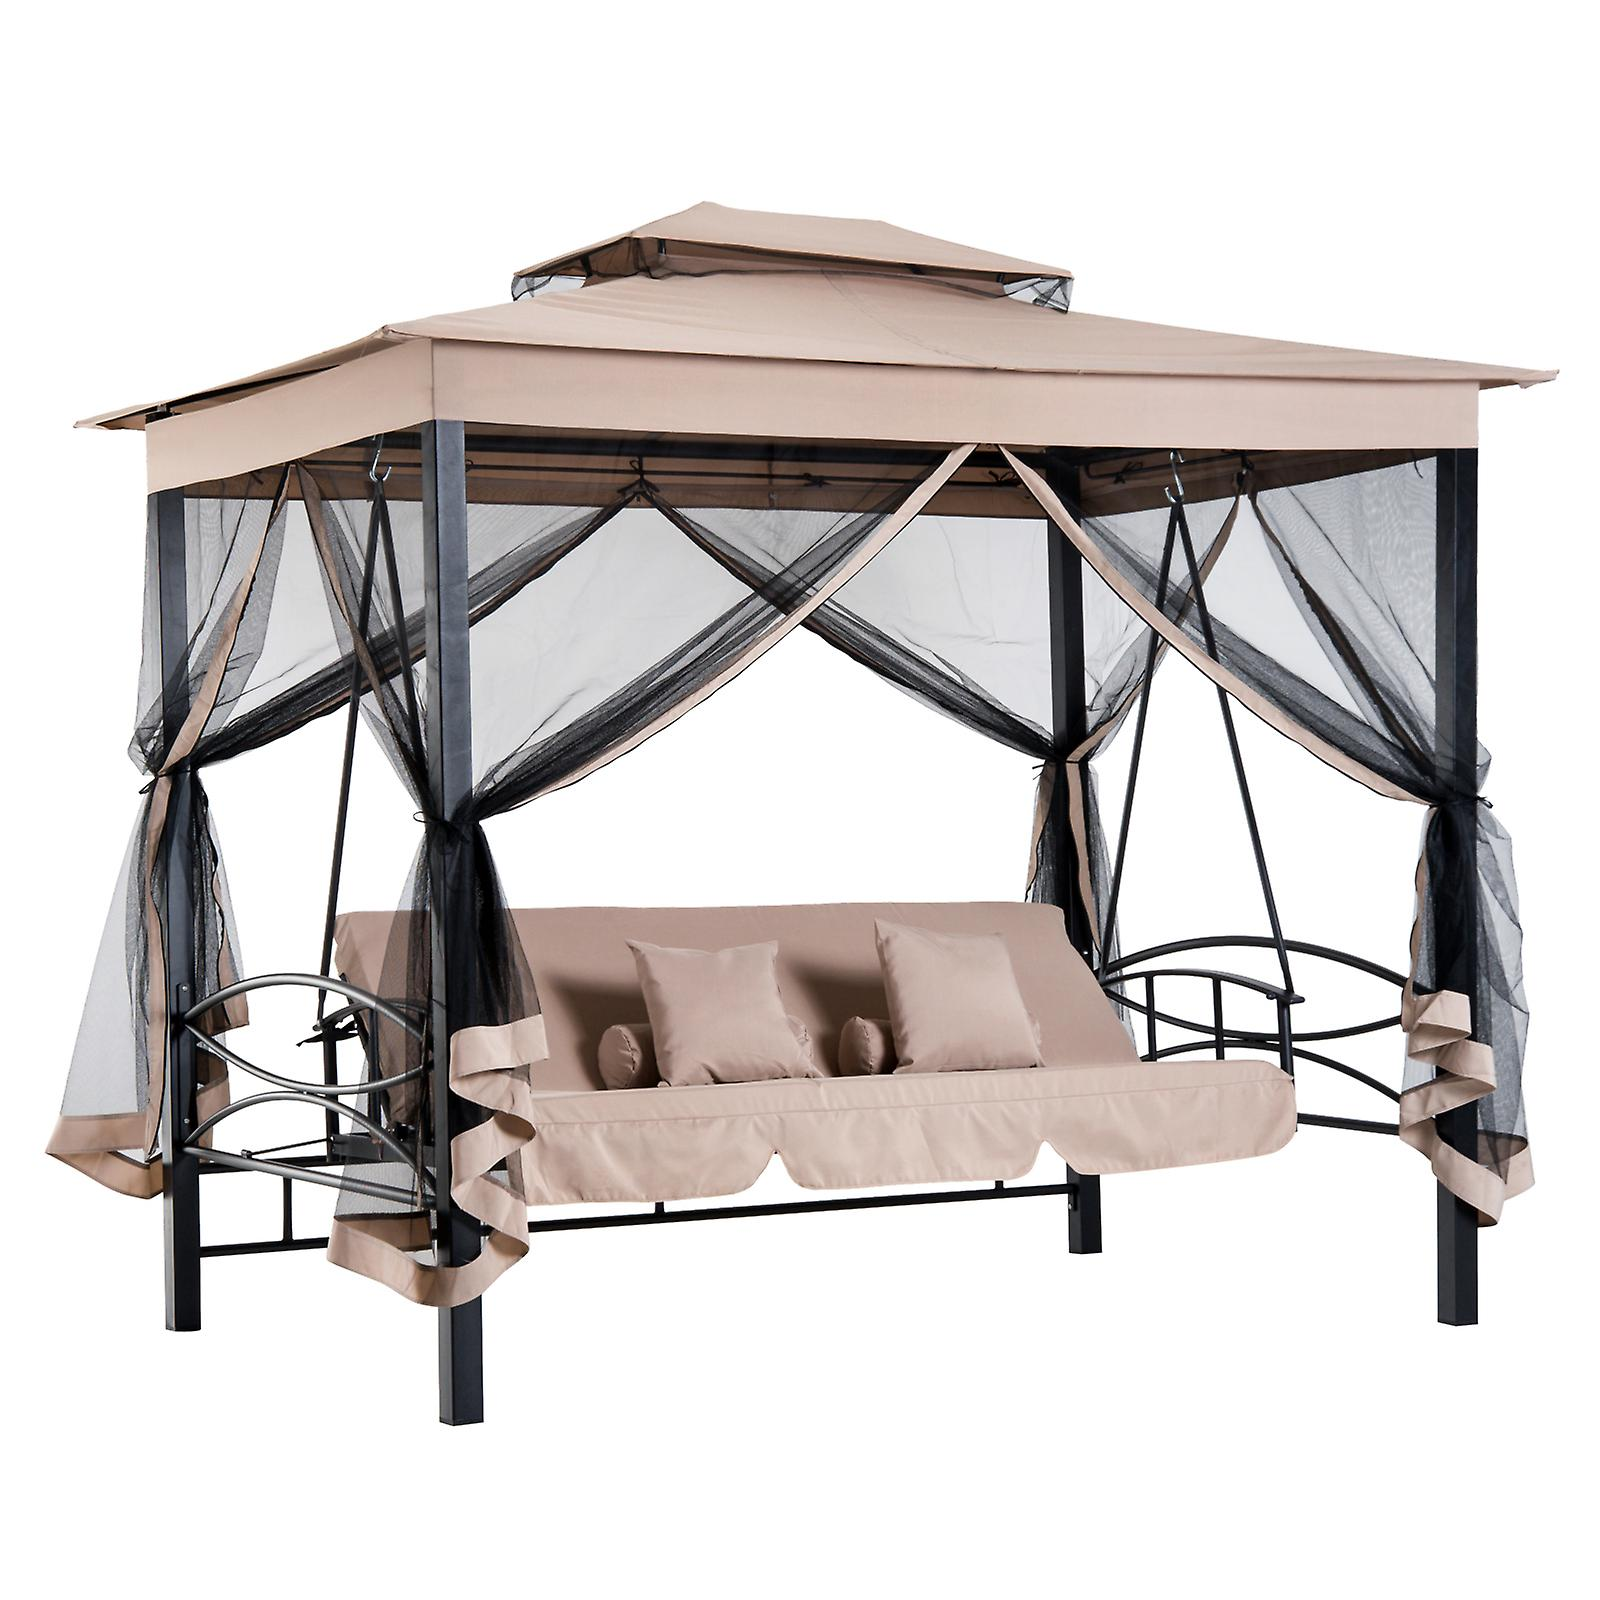 Outsunny 3 Seater Swing Chair Hammock Gazebo Patio Bench Cushioned